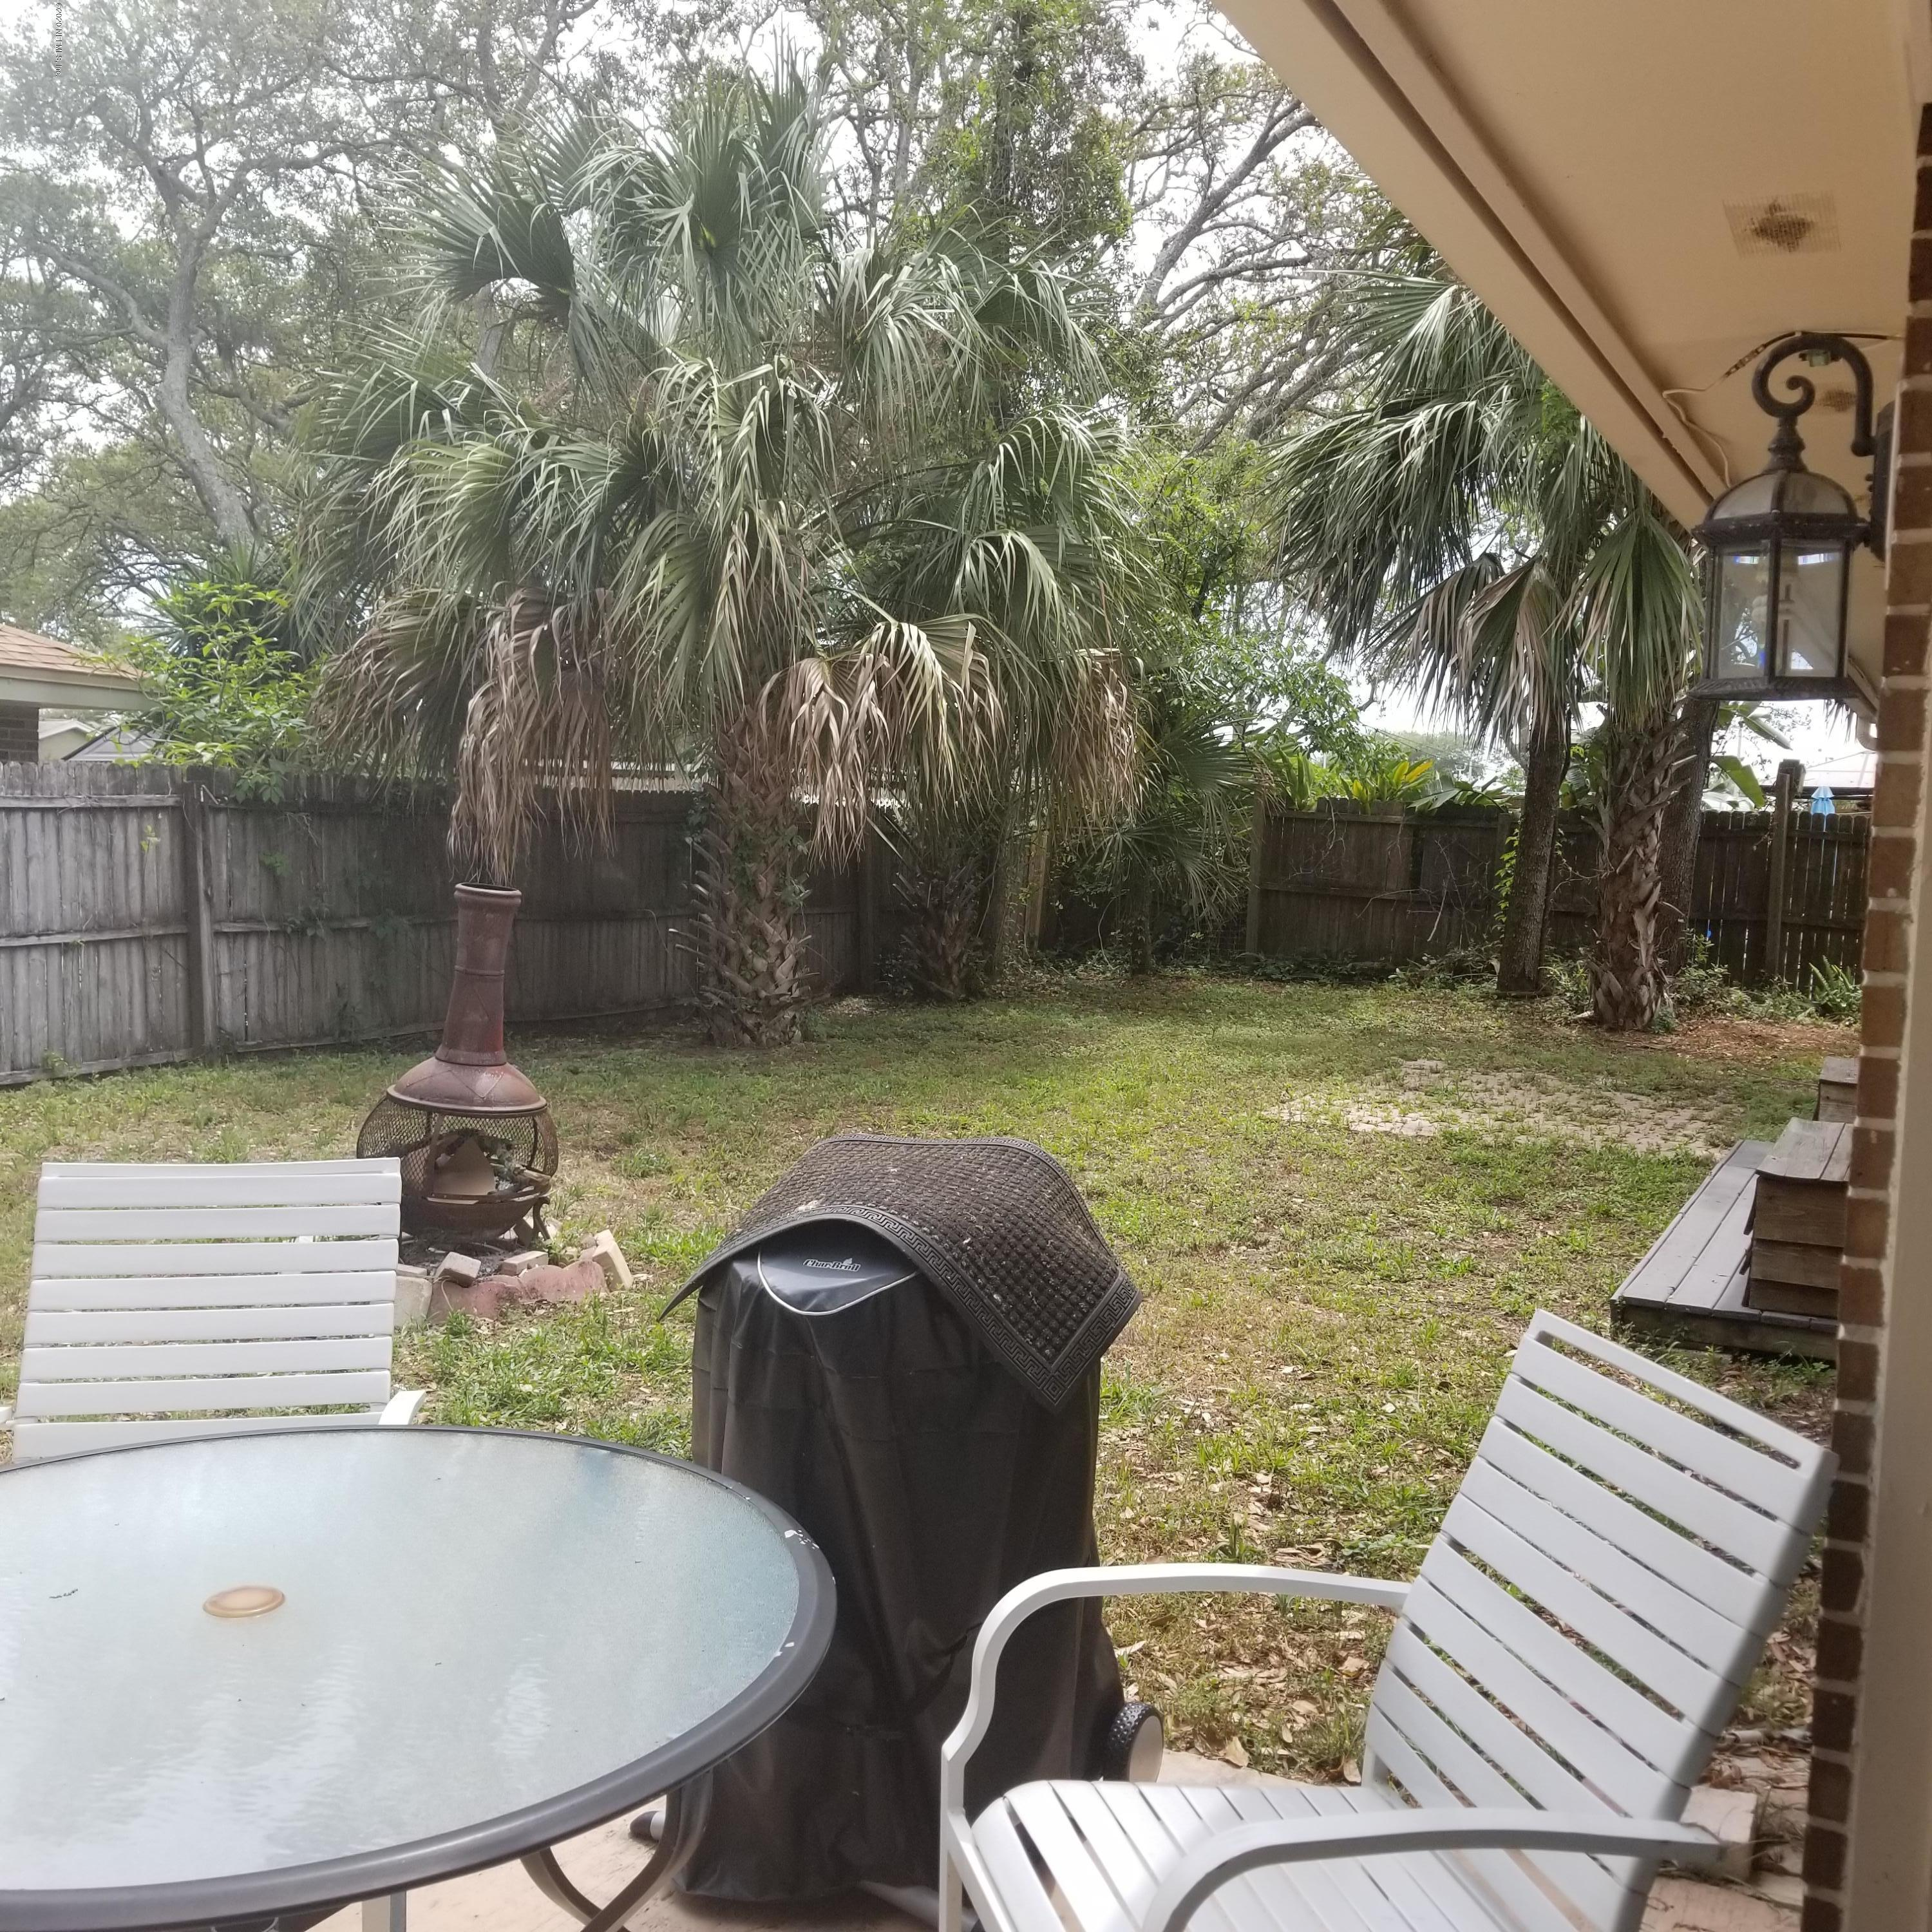 801 FOREST, NEPTUNE BEACH, FLORIDA 32266, 3 Bedrooms Bedrooms, ,2 BathroomsBathrooms,Residential,For sale,FOREST,1050284